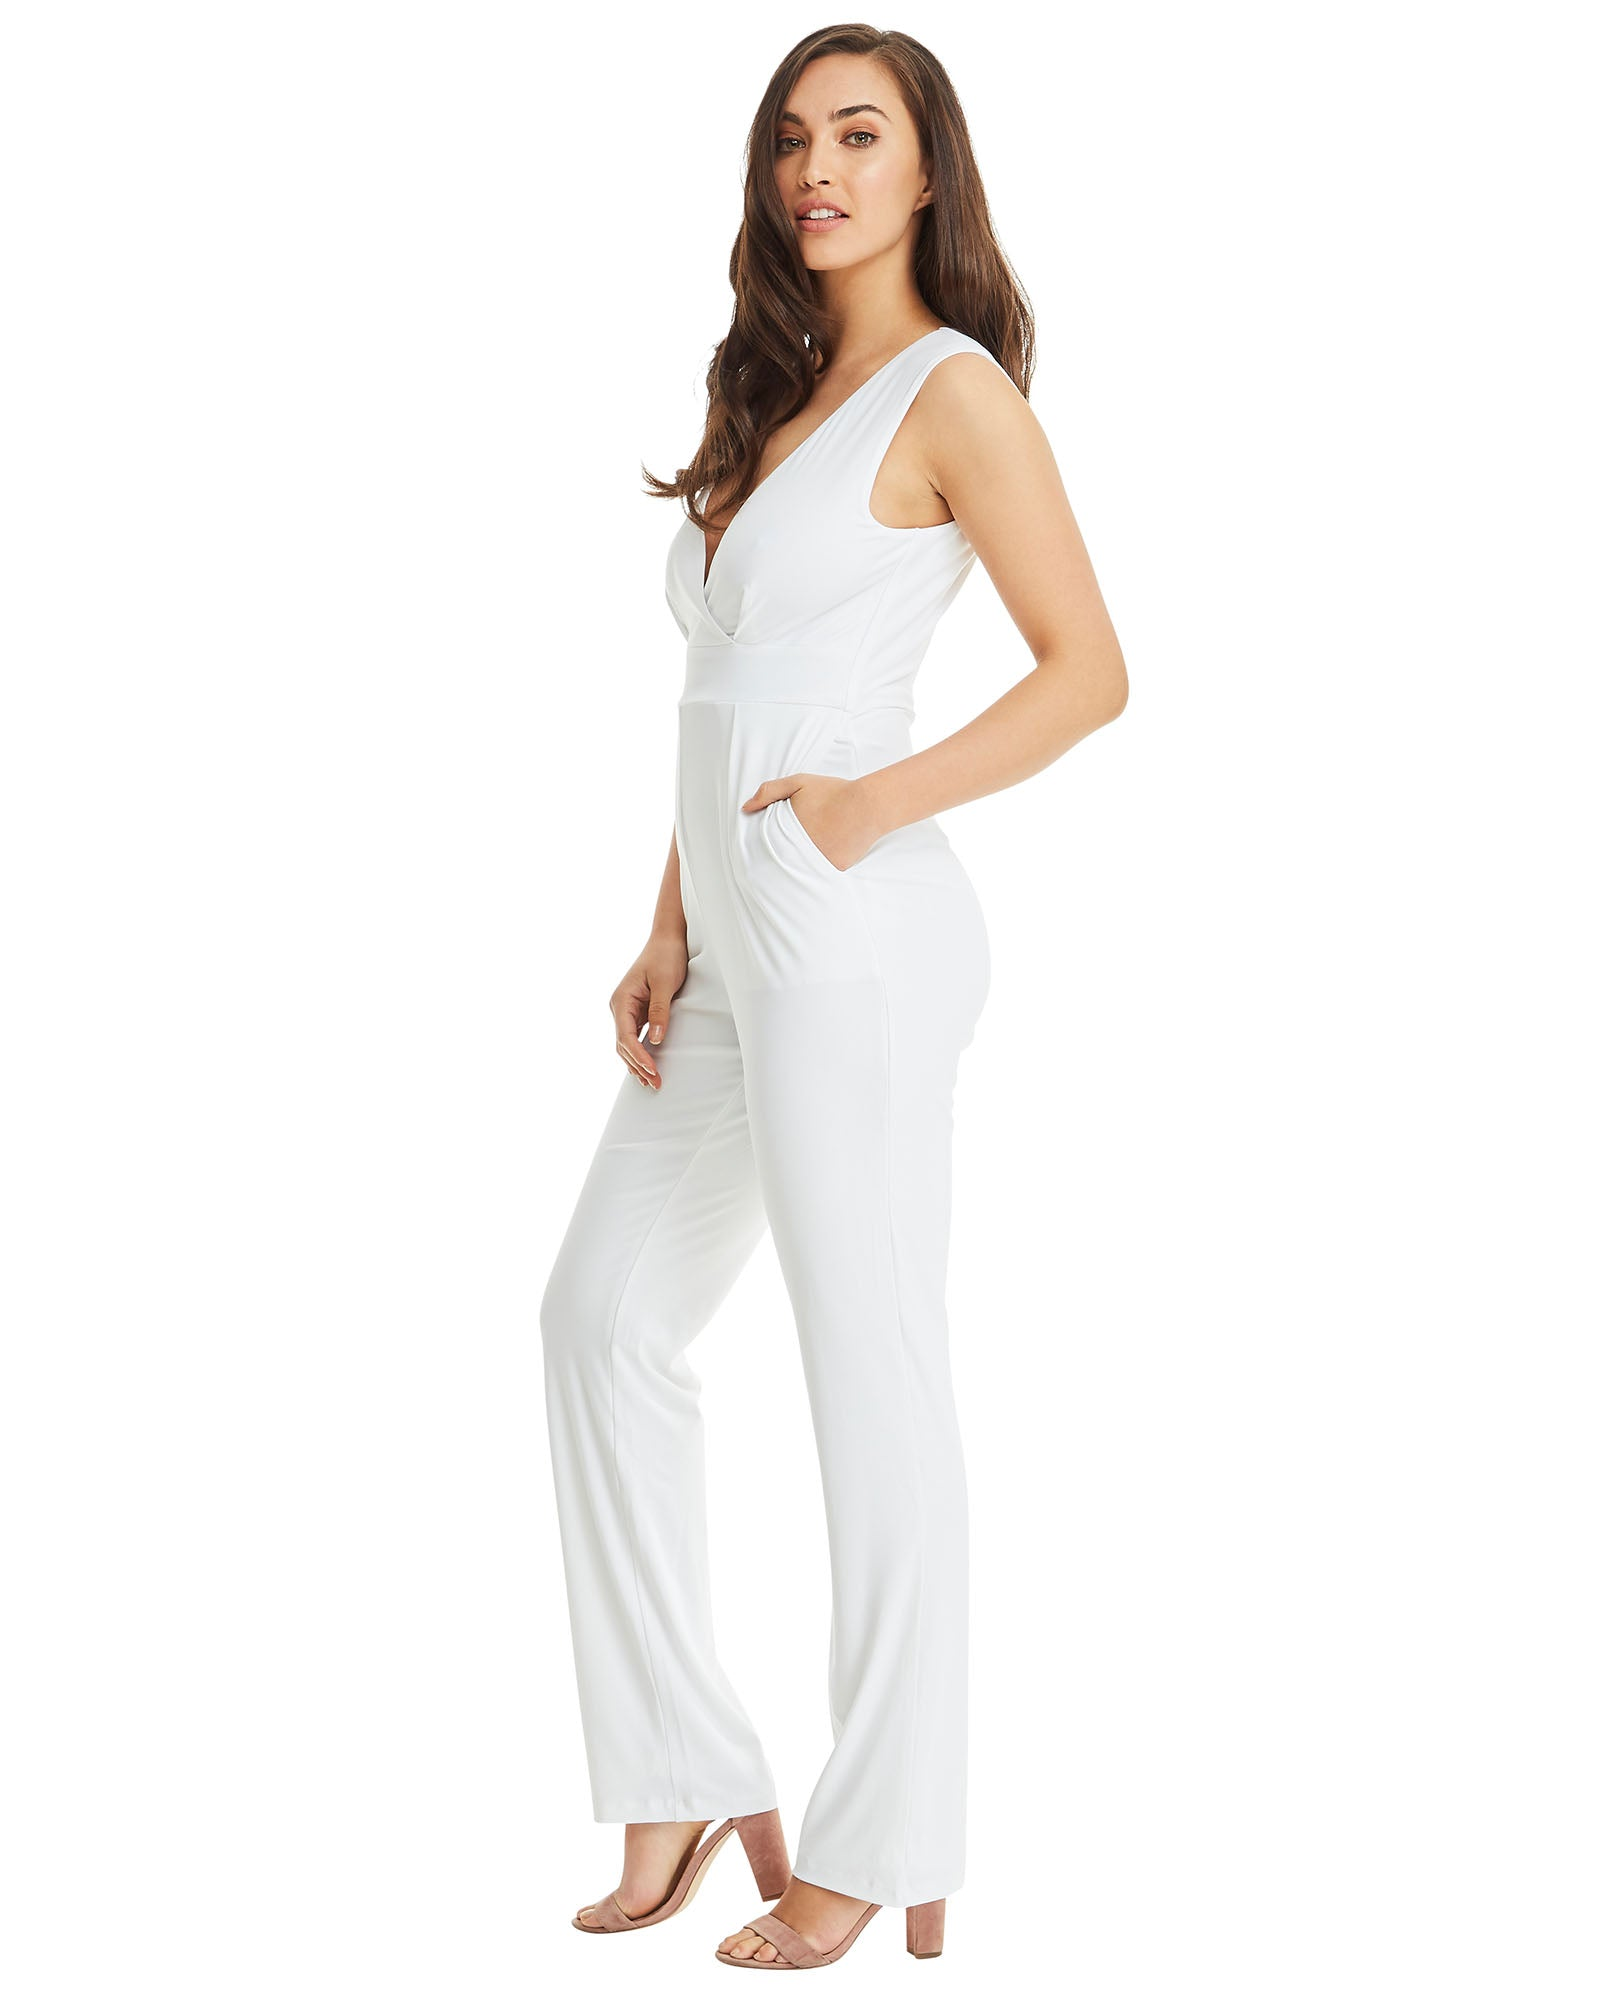 SKIVA V neck jumpsuit pantsuit straps white stretch jersey  fabric pockets zipper fully lined